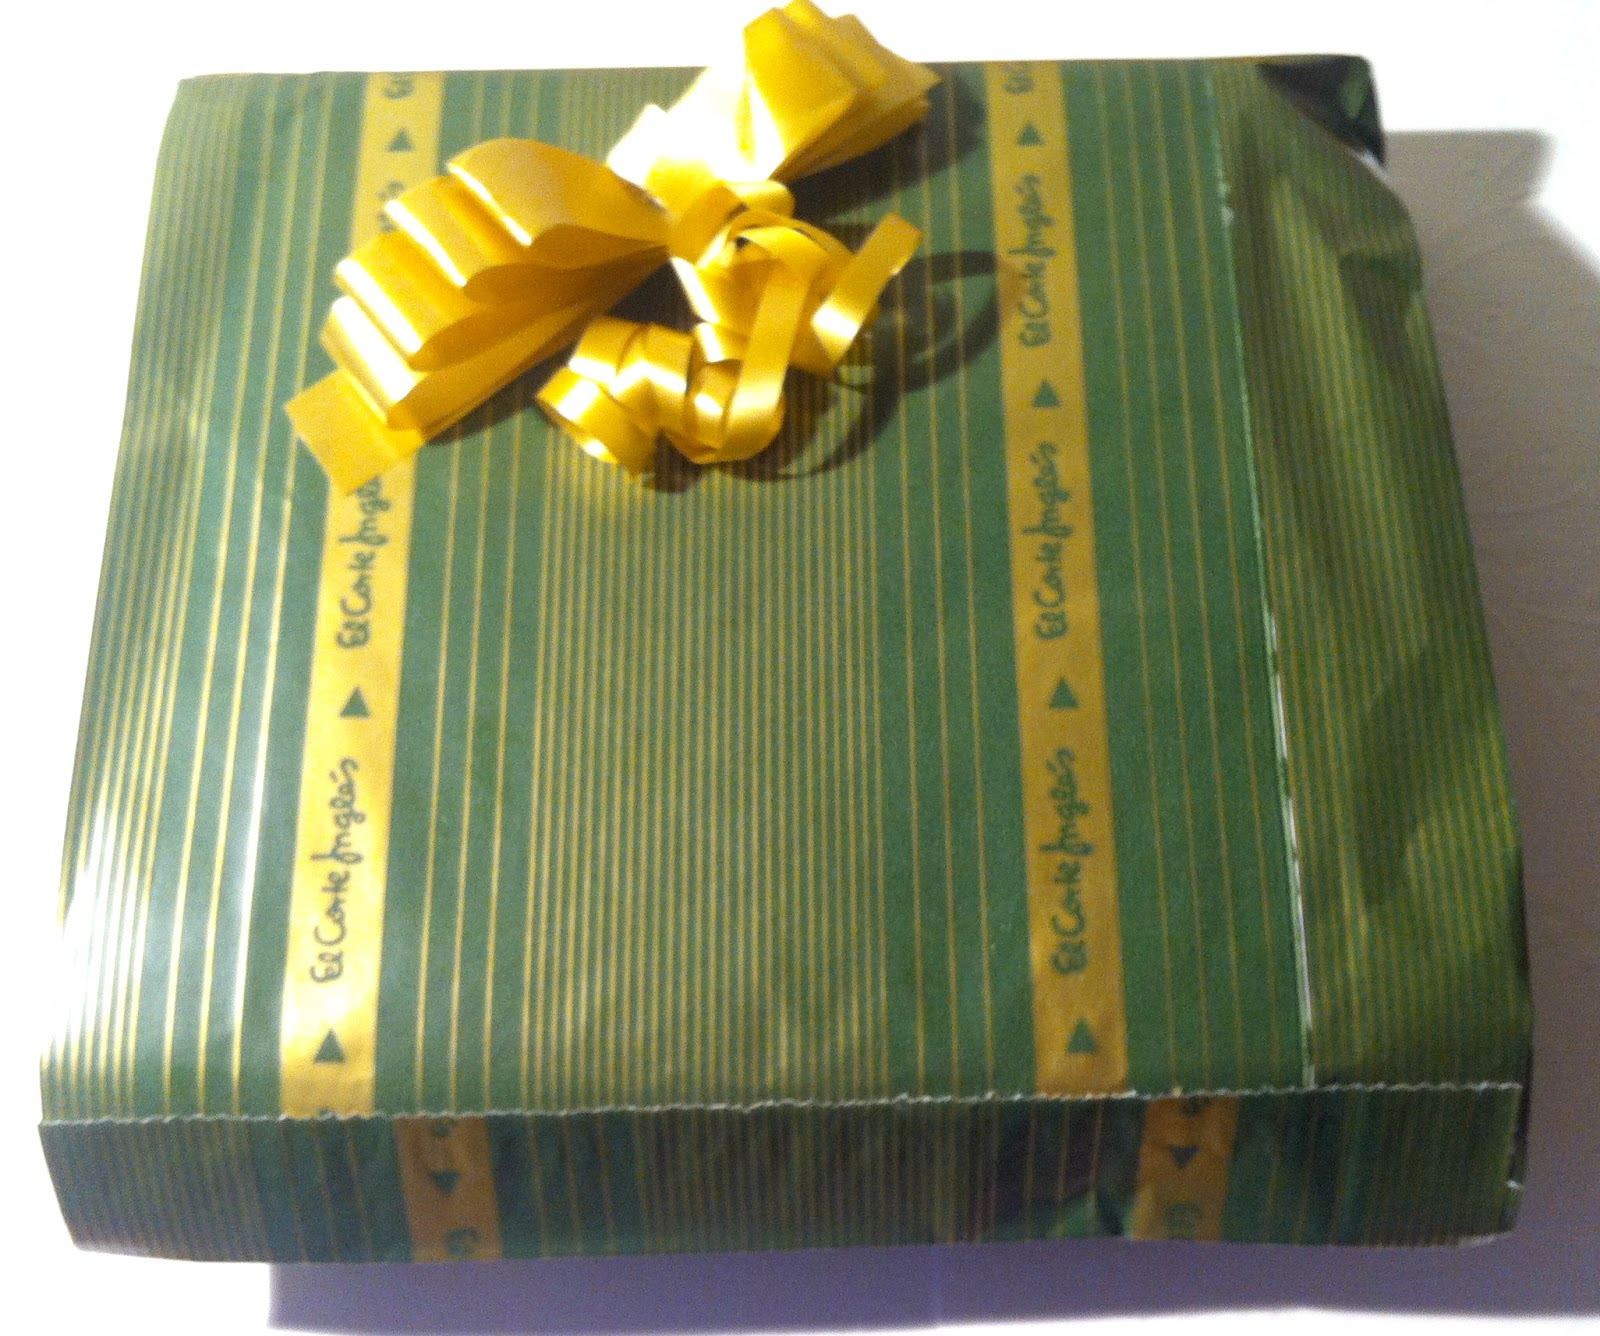 May scrap packaging regalo - El corte ingles regalos boda ...